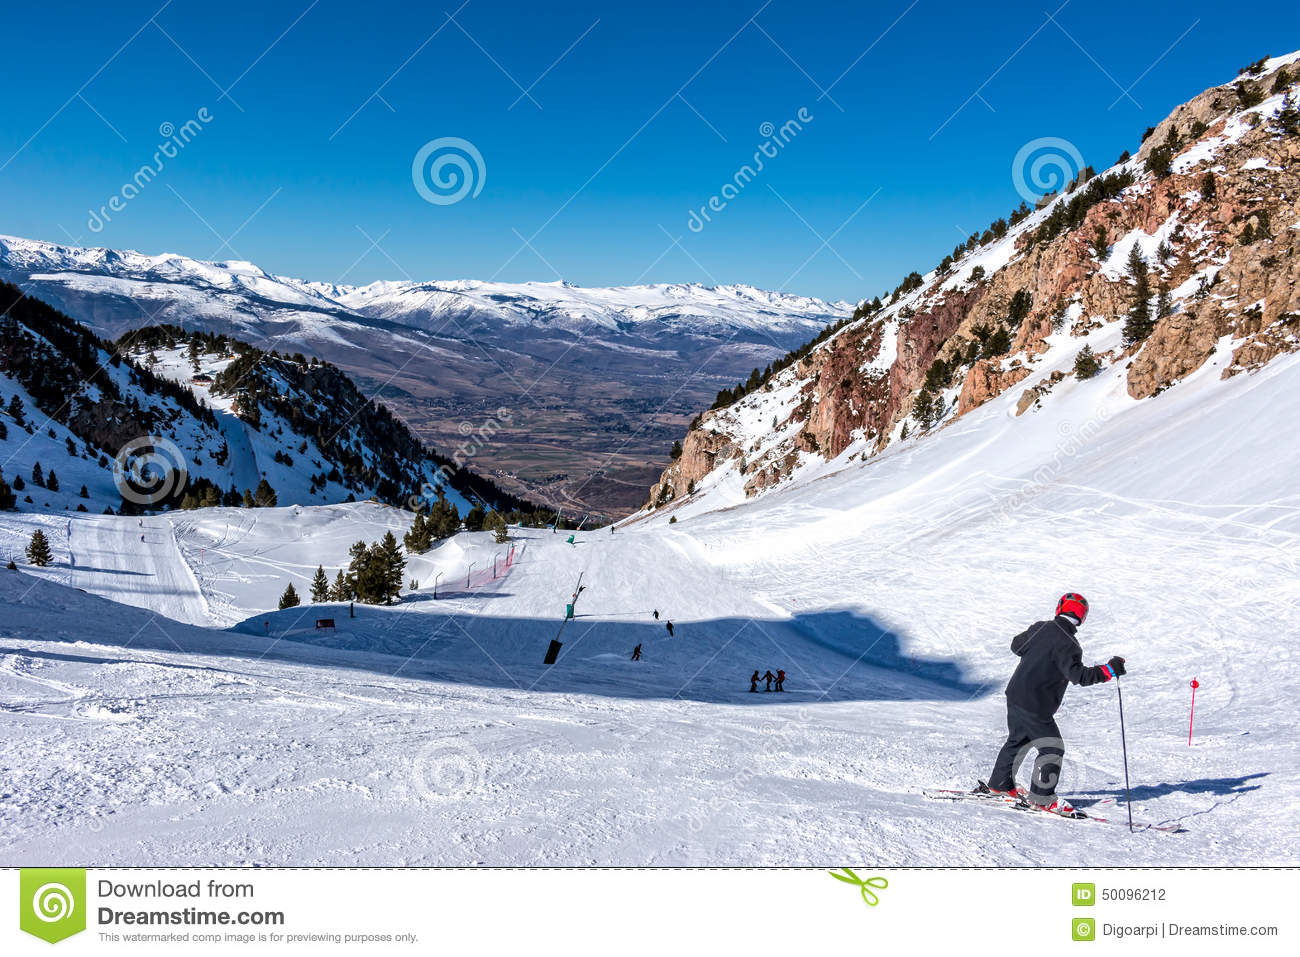 snowy mountains in spain stock photo. image of spain - 50096212